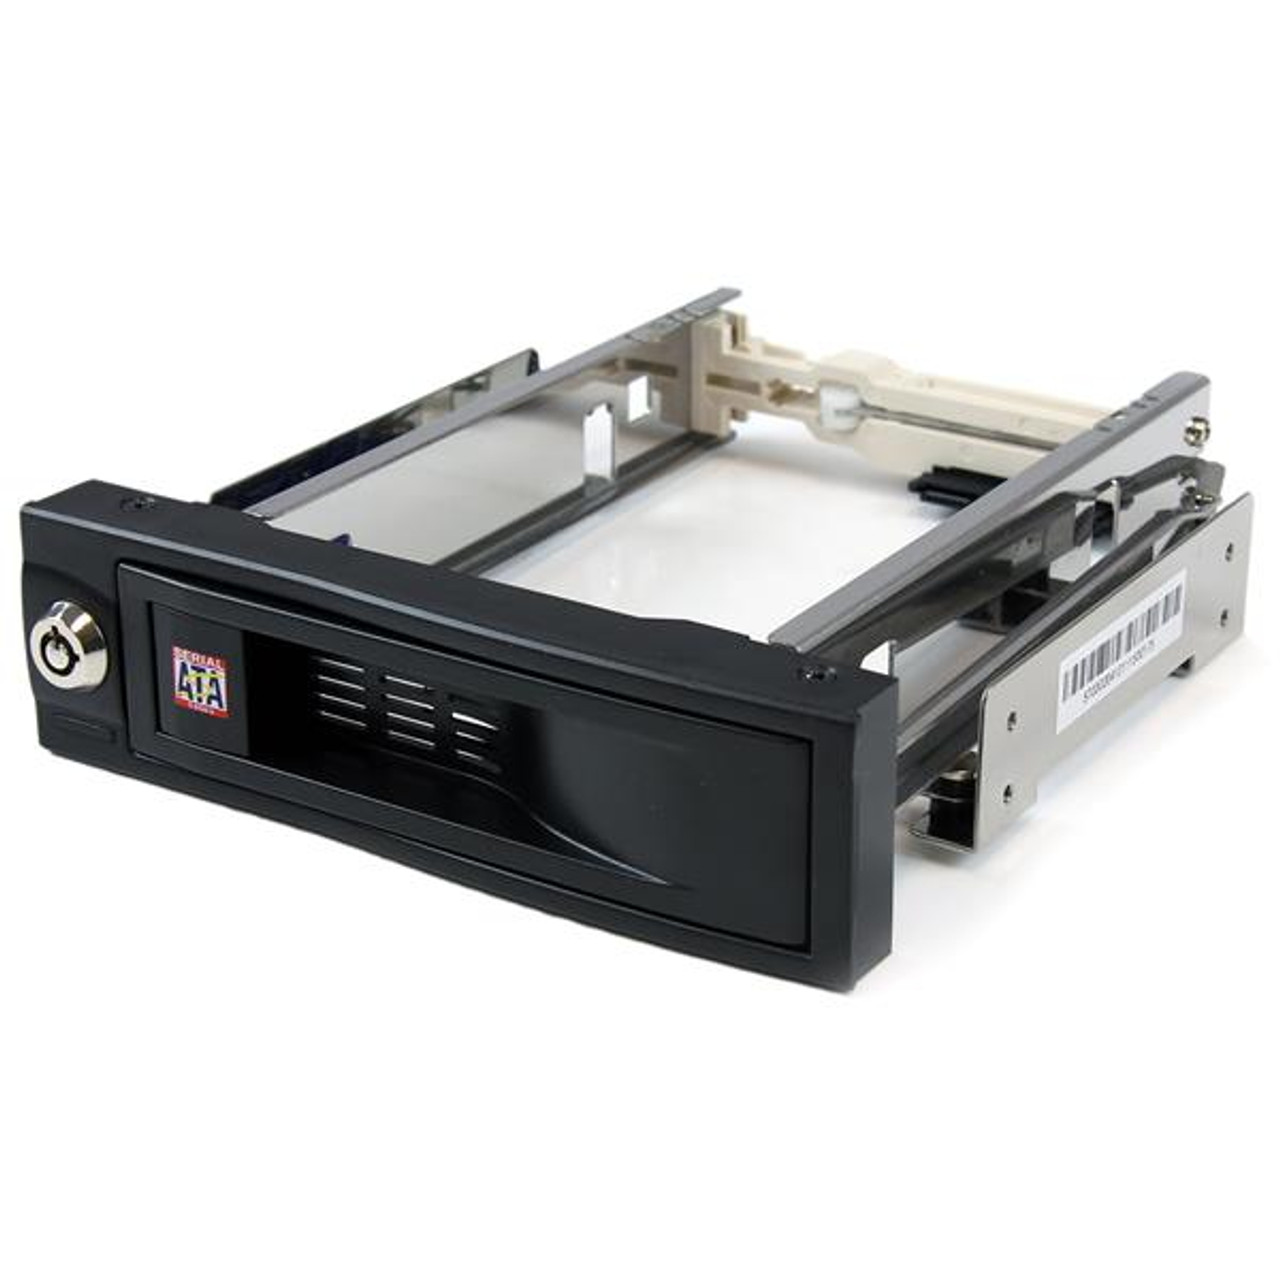 Image for StarTech 5.25in Trayless Hot Swap Mobile Rack for 3.5in Hard Drive CX Computer Superstore